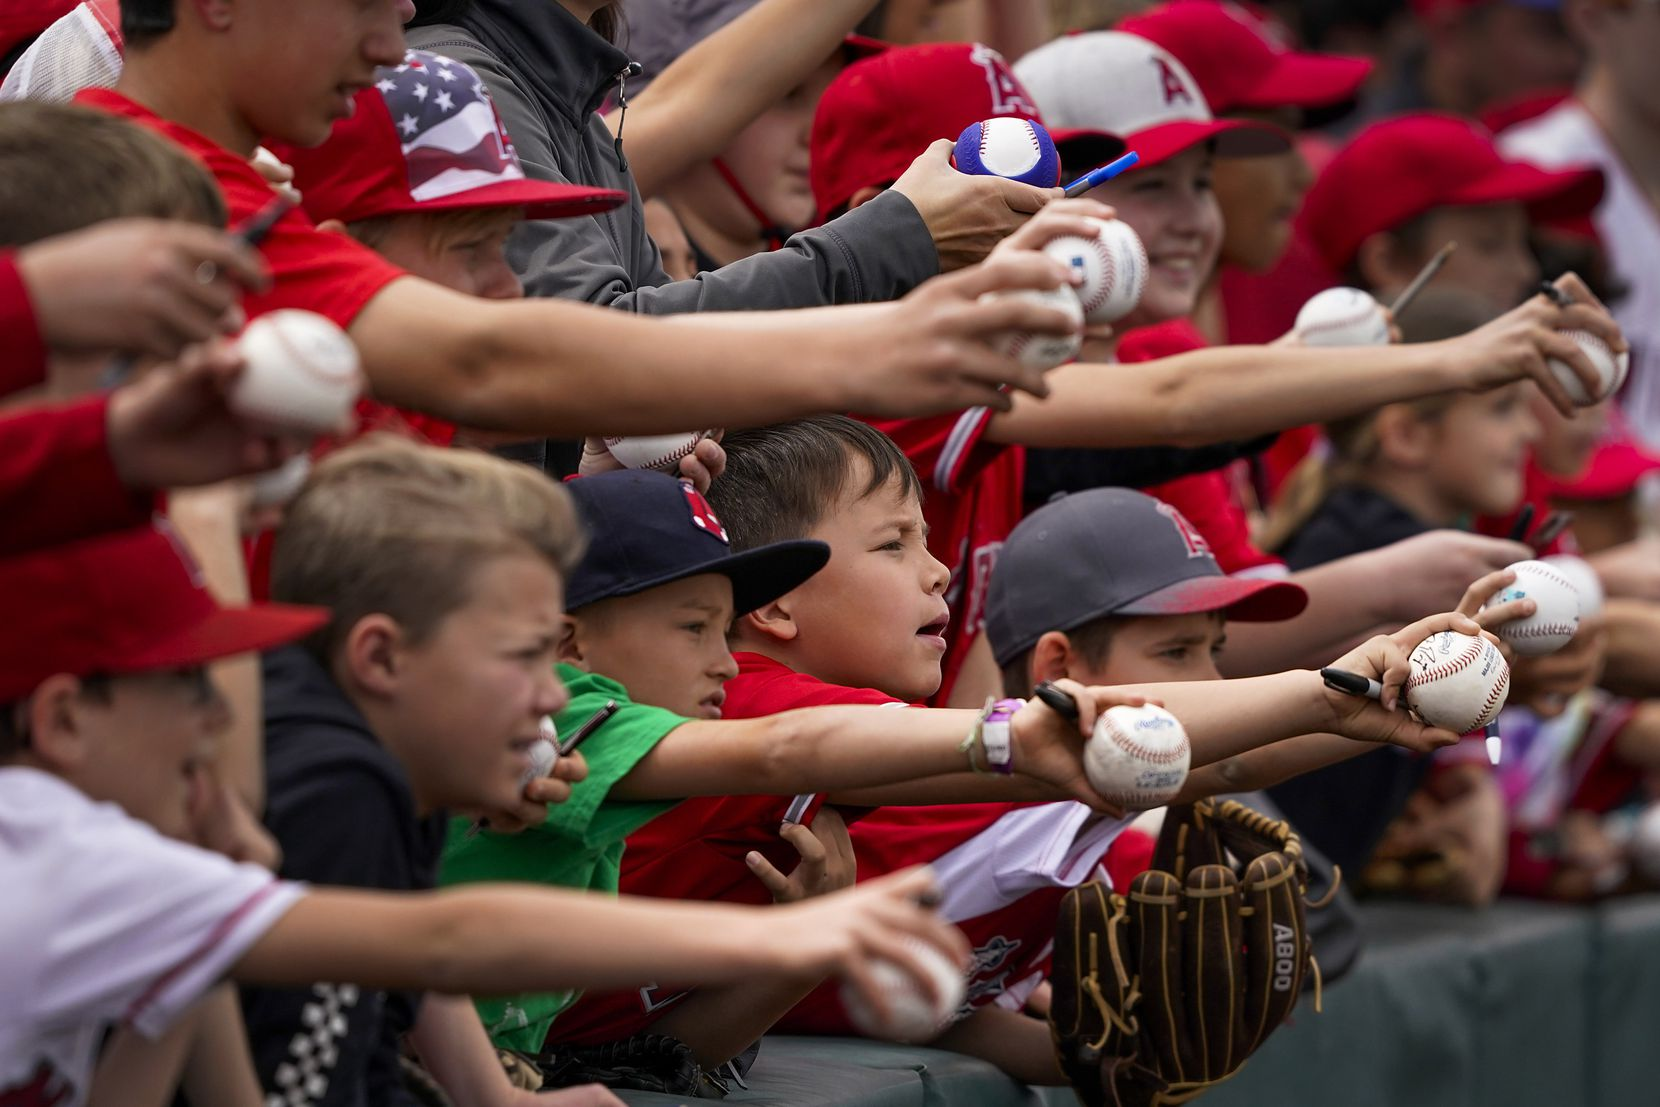 Young fans plead for players to sign their baseballs before a spring training game between the Rangers and the Los Angeles Angels at Tempe Diablo Stadium in Tempe, Ariz.